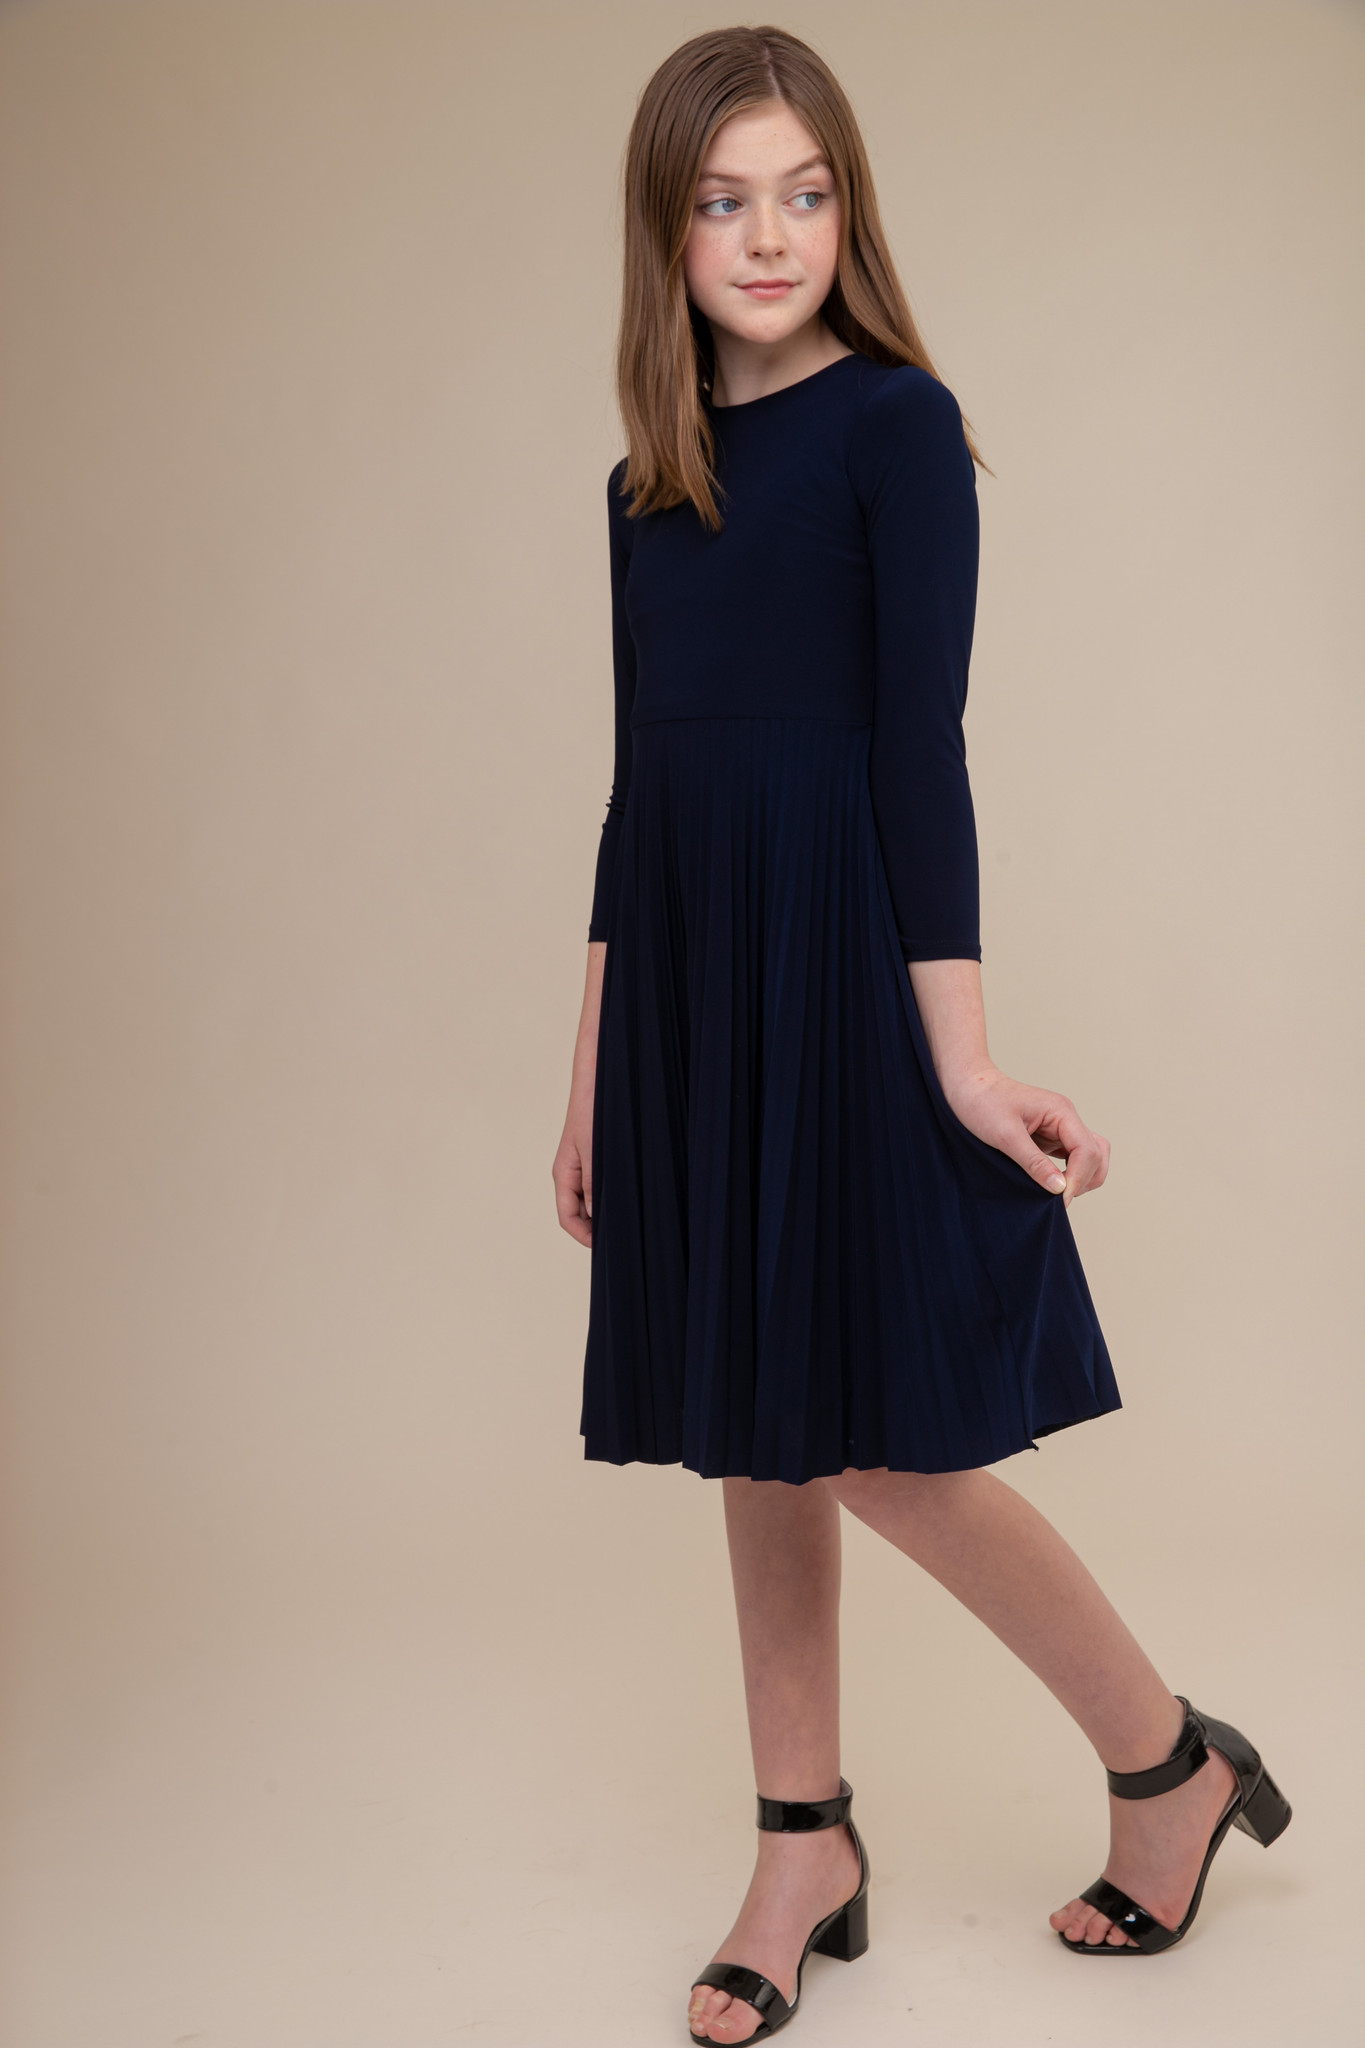 Navy Blue High Neck Pleated Dress with Sleeve in Longer Length.